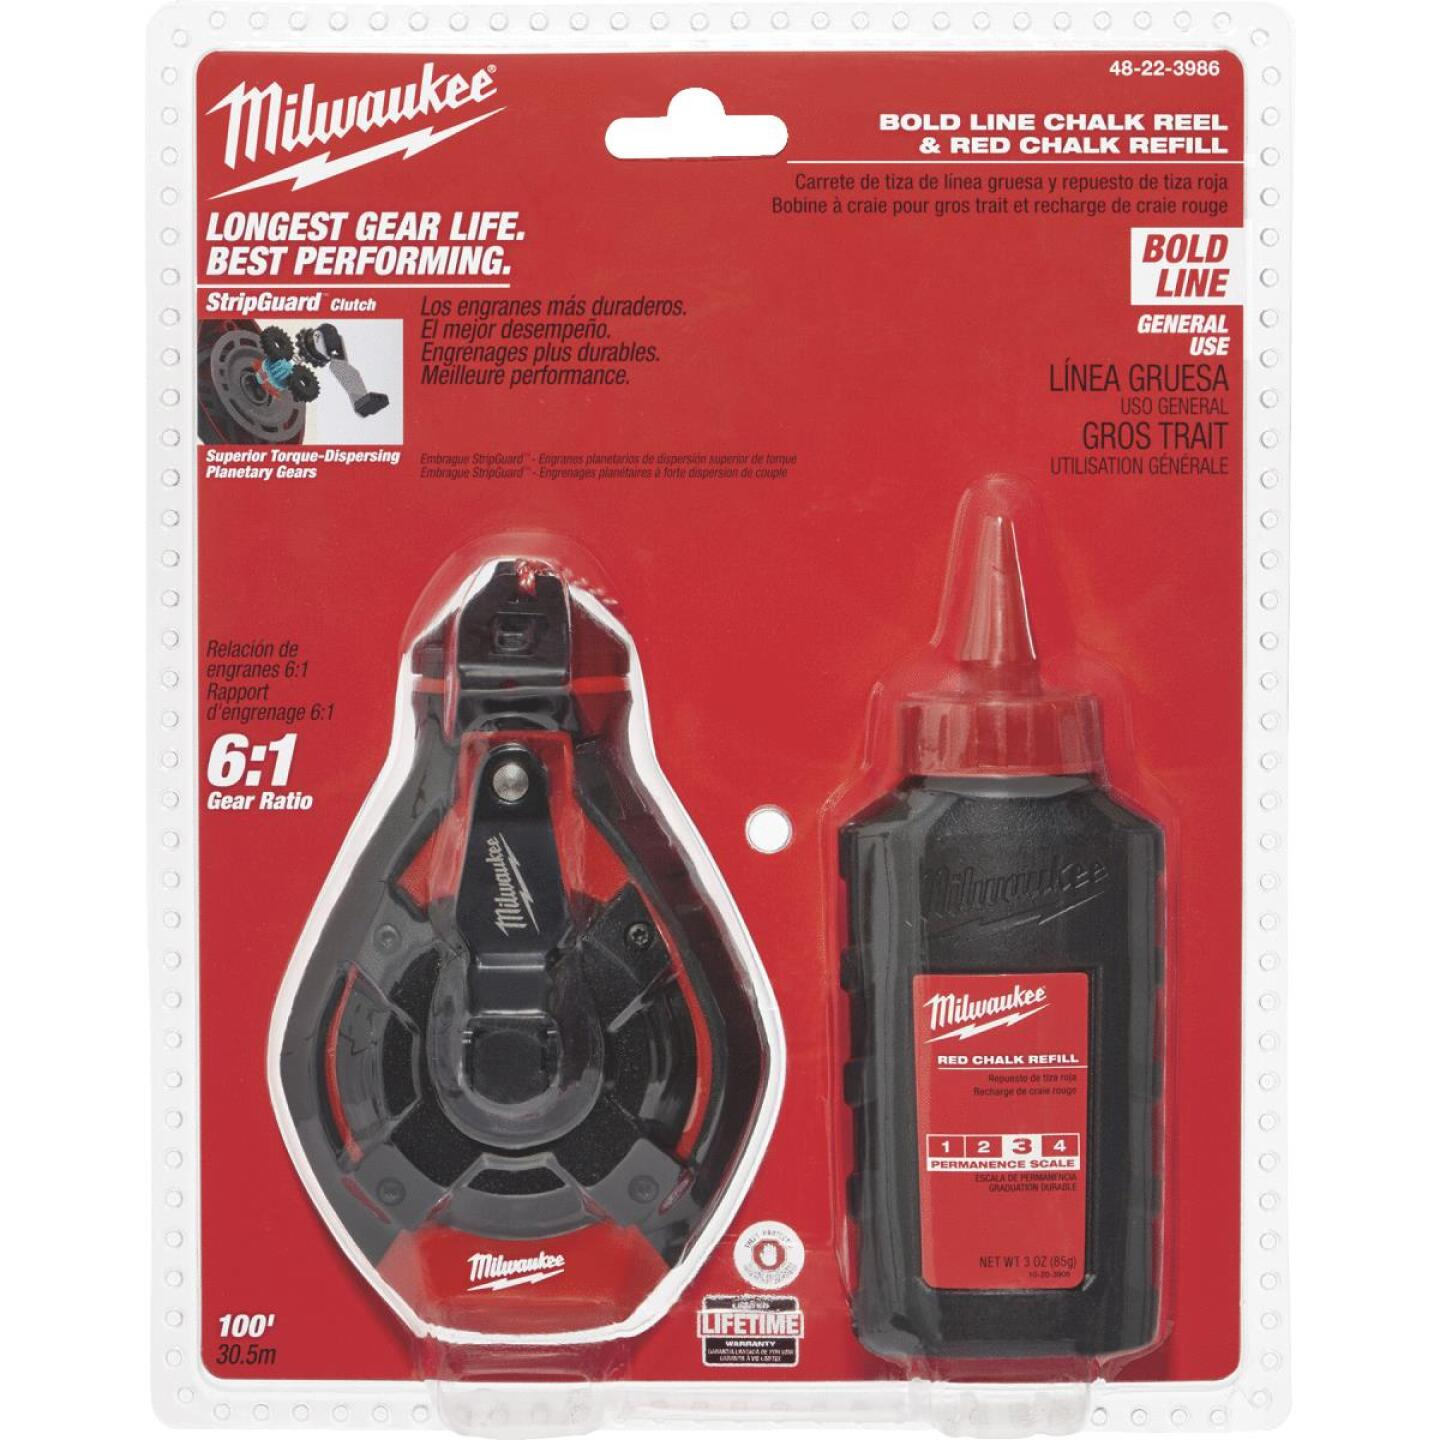 Milwaukee 100 Ft. Bold Chalk Line Reel and Chalk, Red Image 1